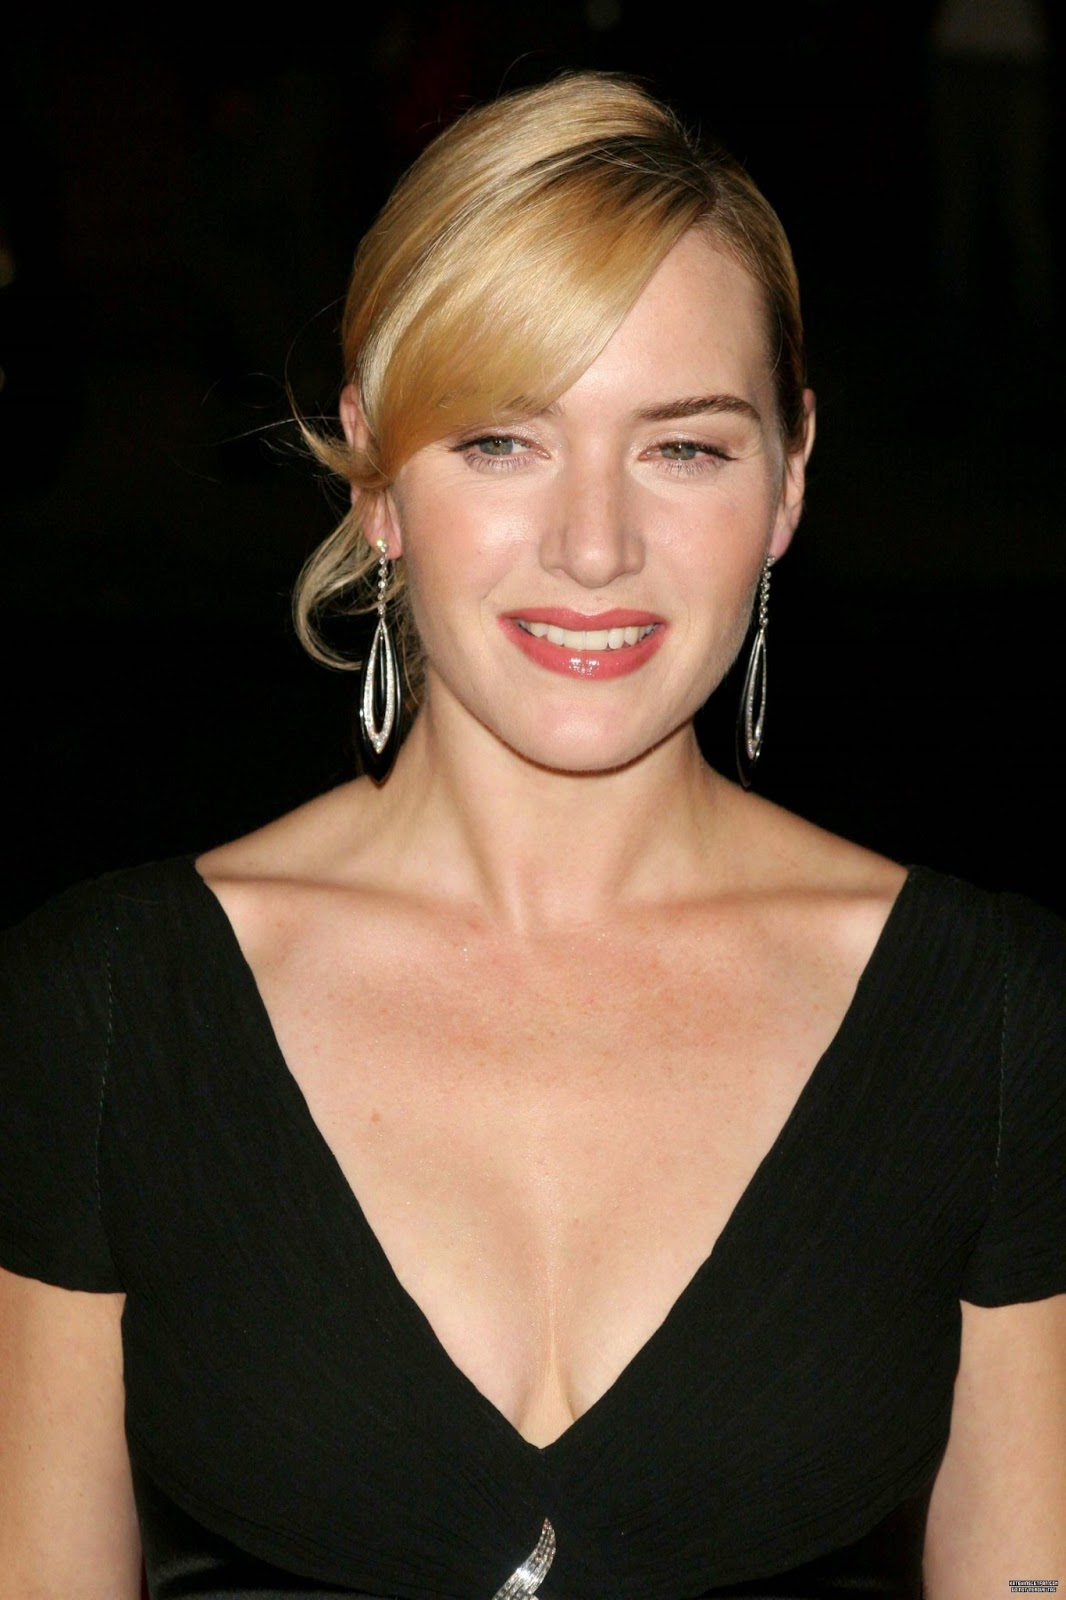 Kate Winslet Kate Winslet Photoshoot-3322